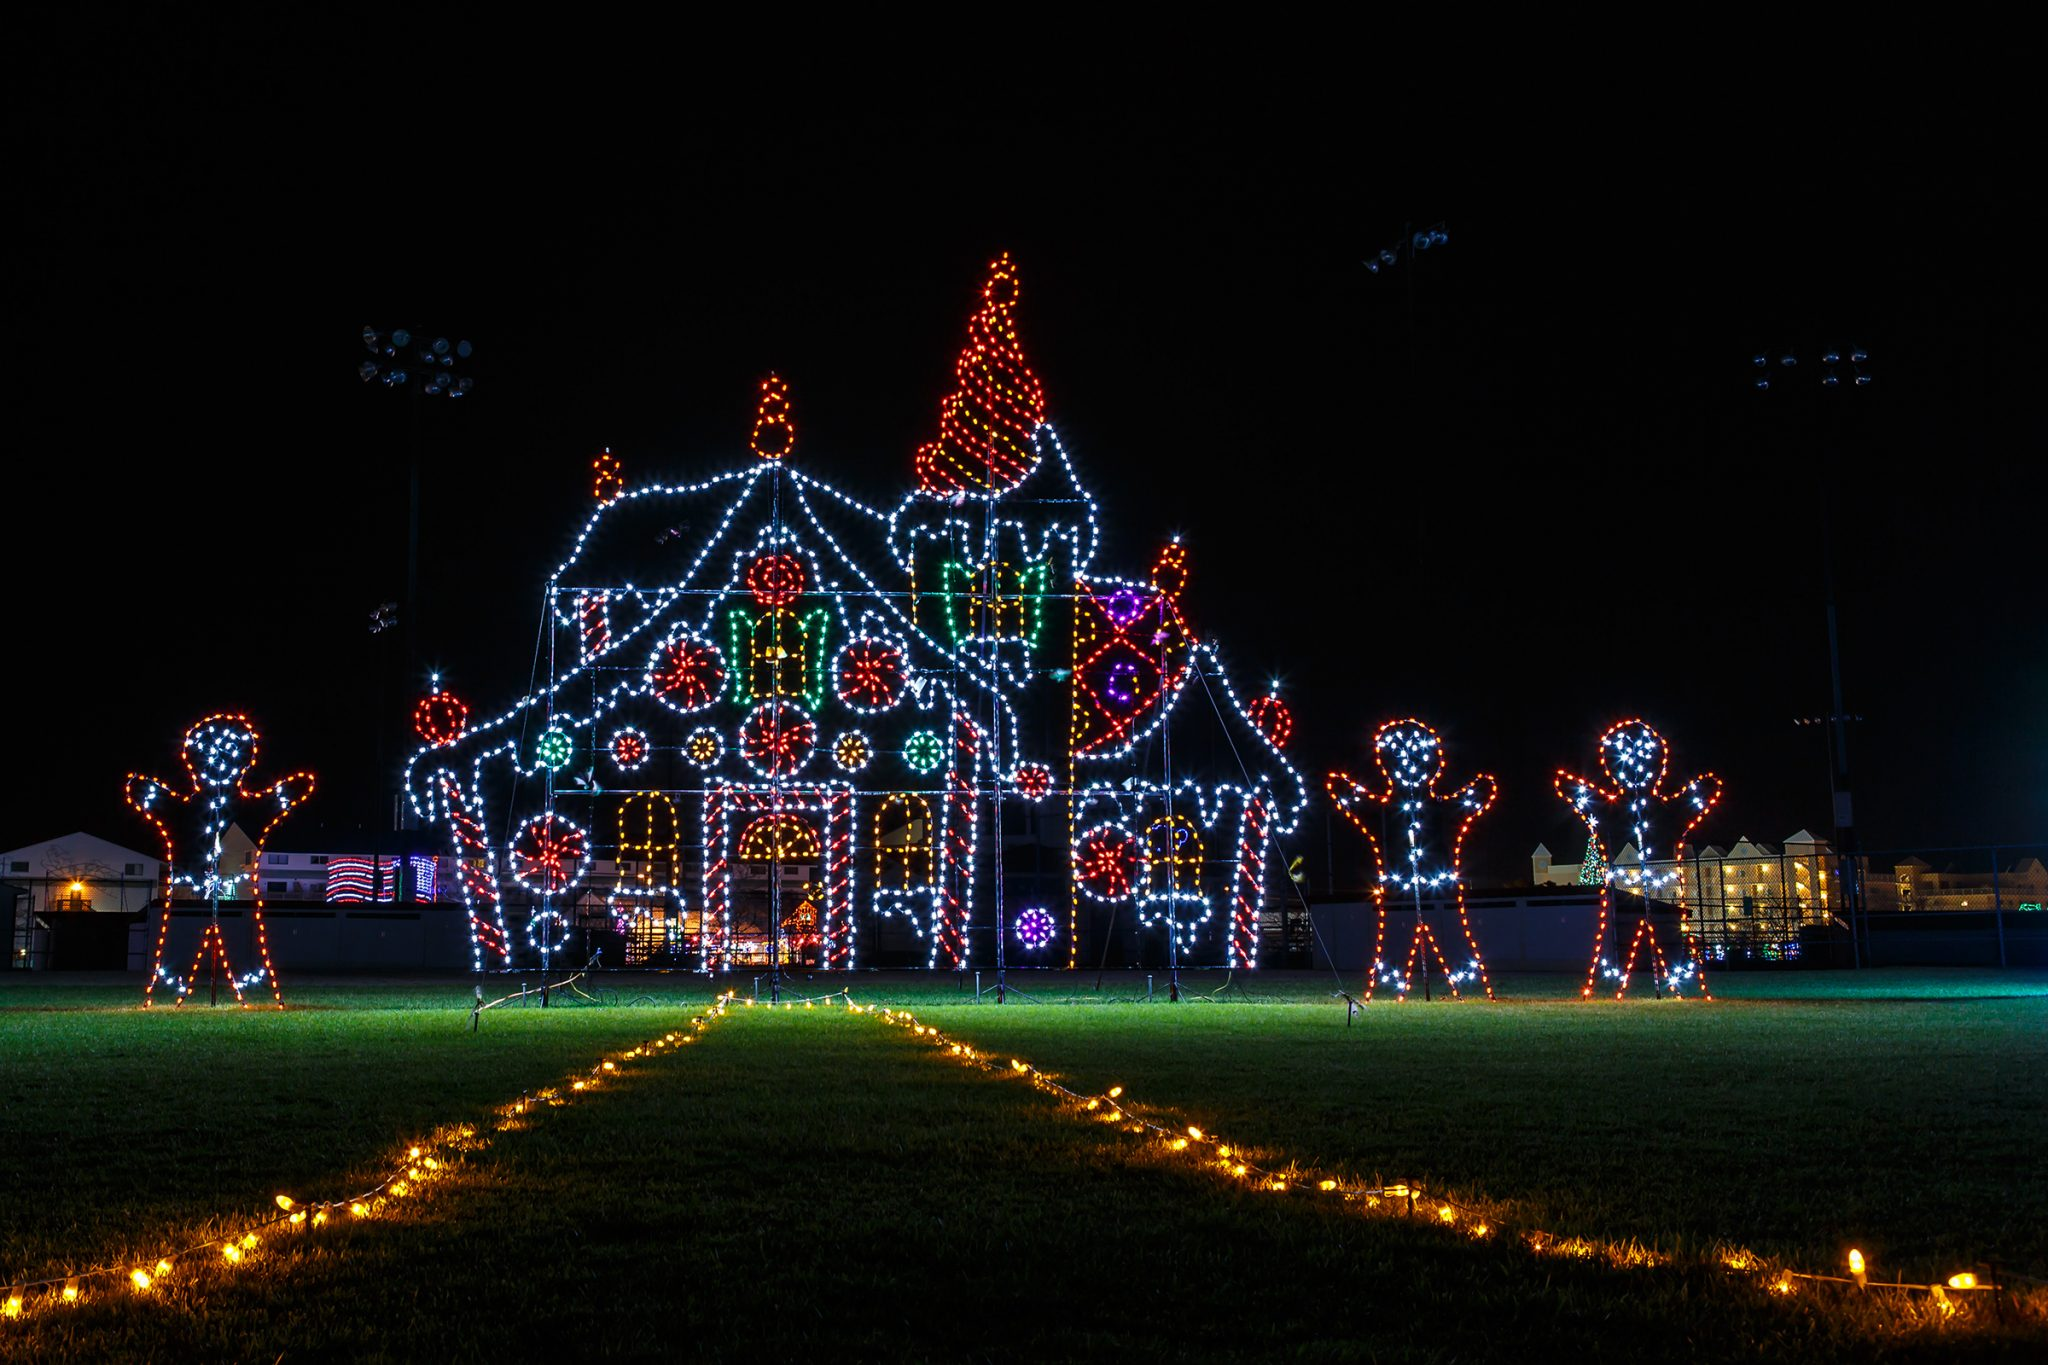 Winterfest Christmas lights display in Ocean City, Maryland